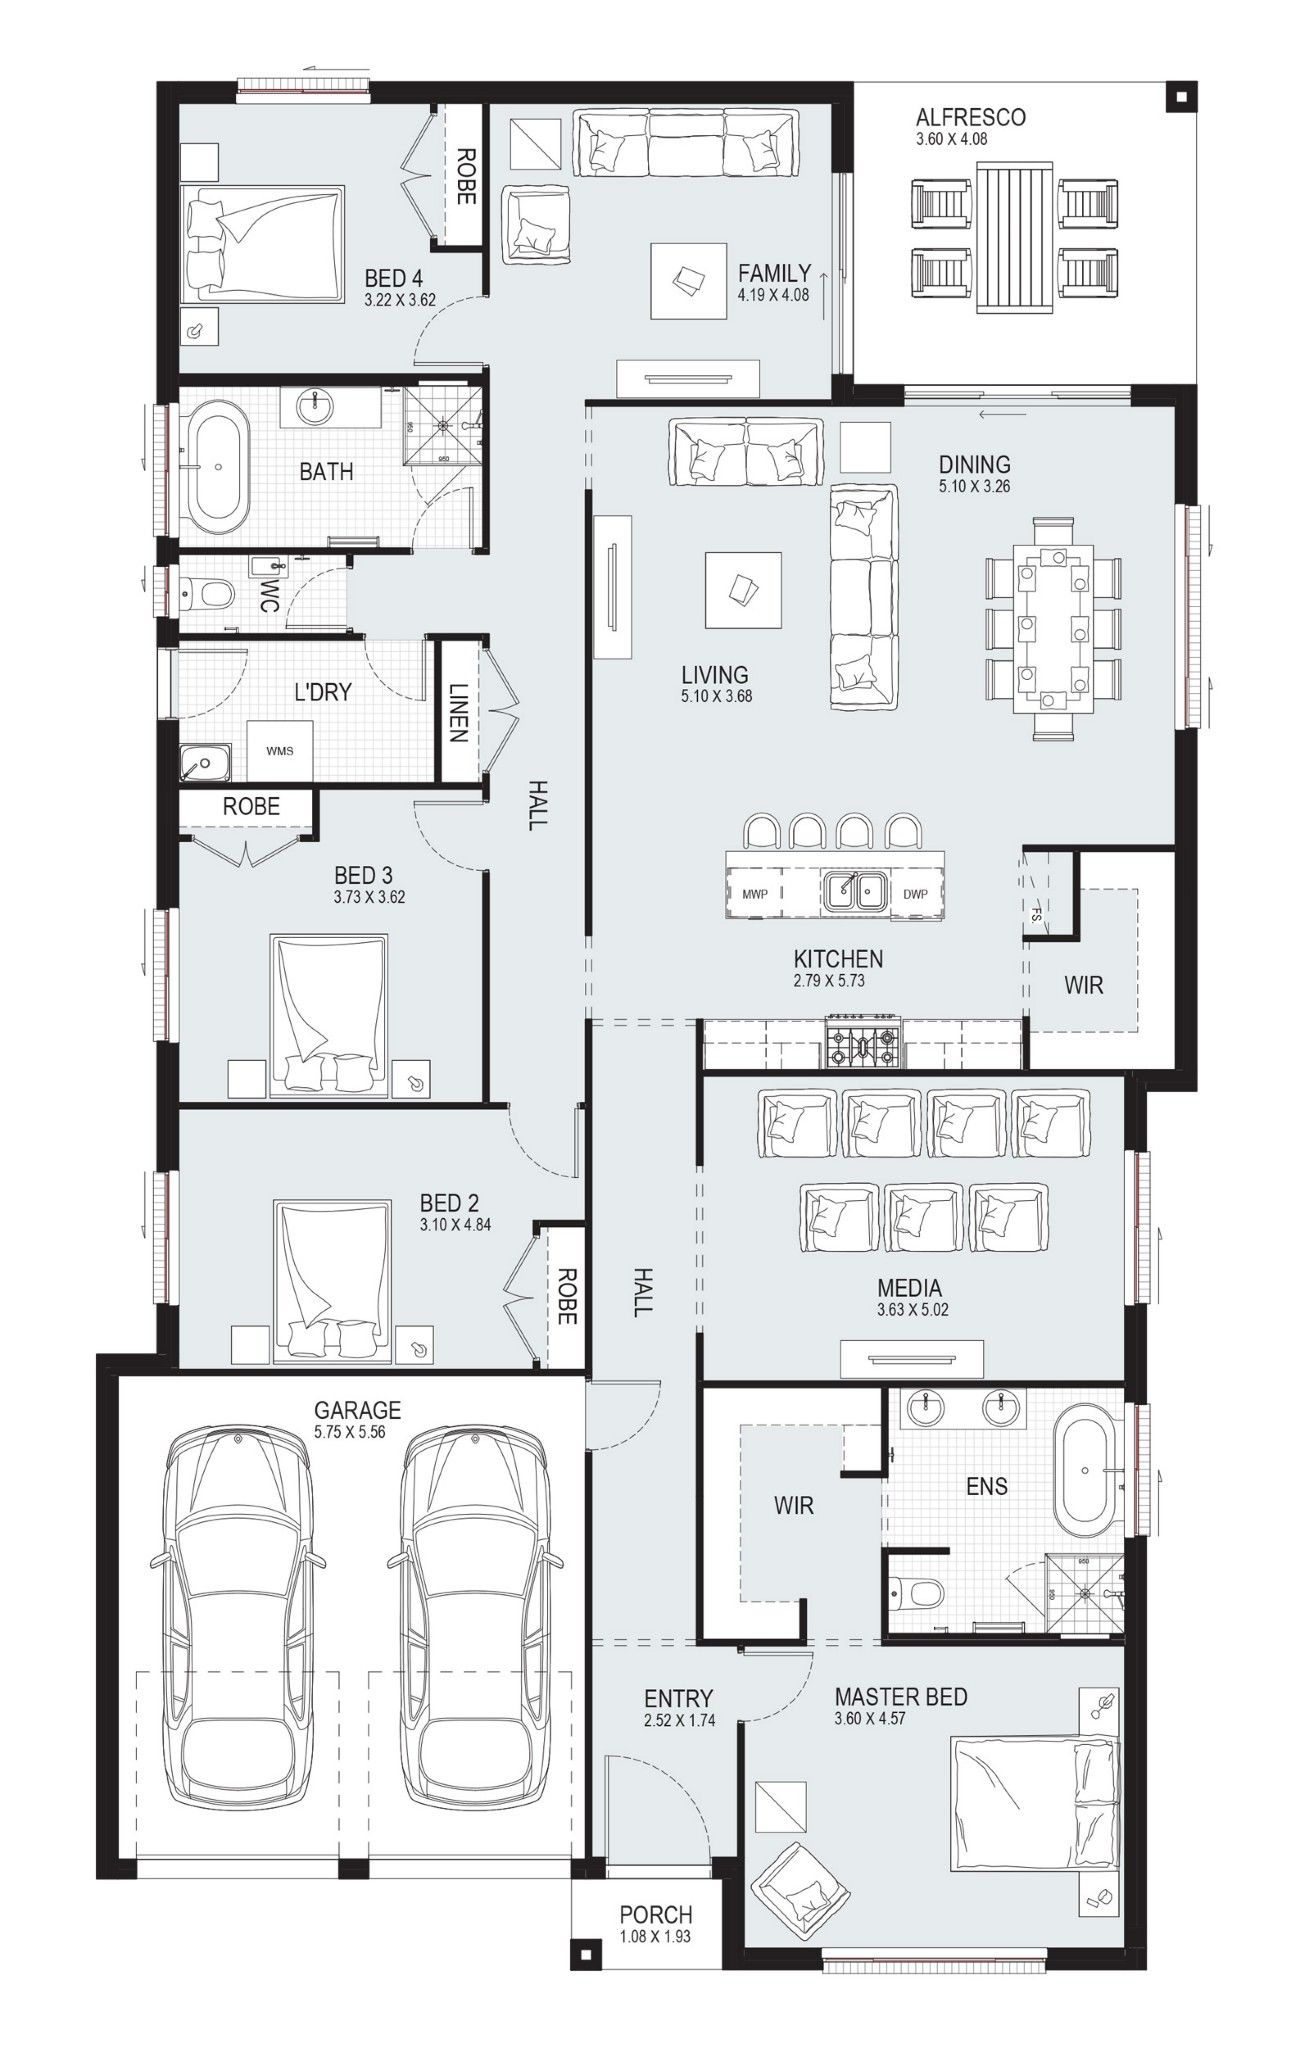 Pin By Owen Clarke On House Plans Home Design Floor Plans